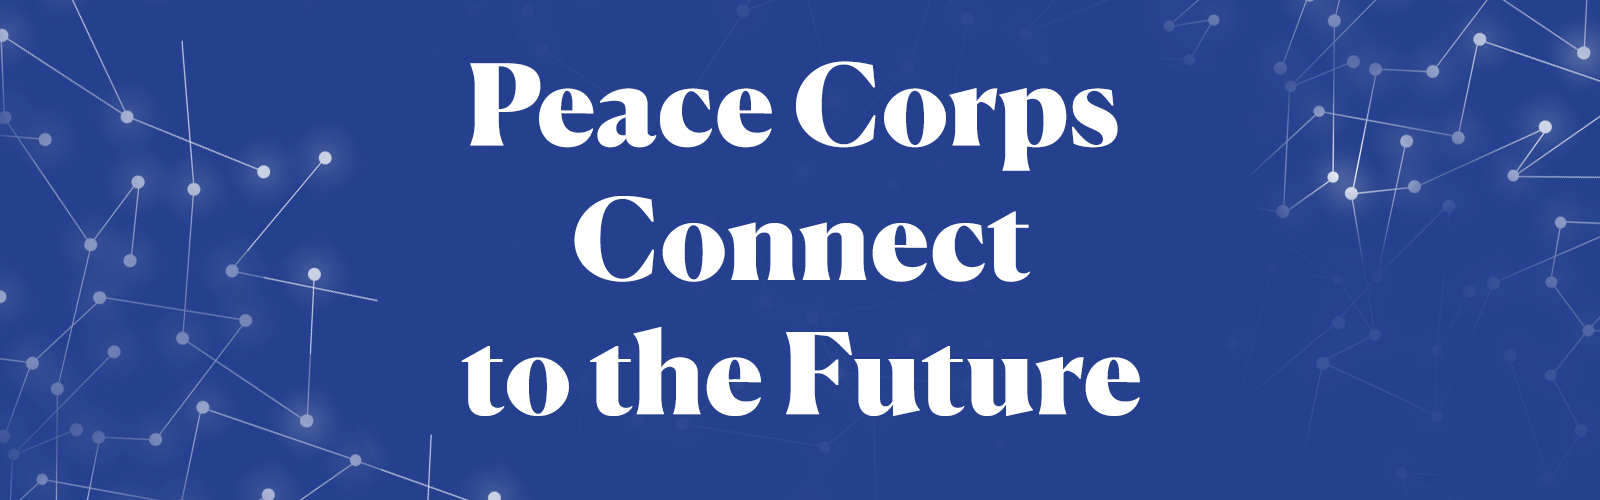 Peace Corps Connect to the Future logo